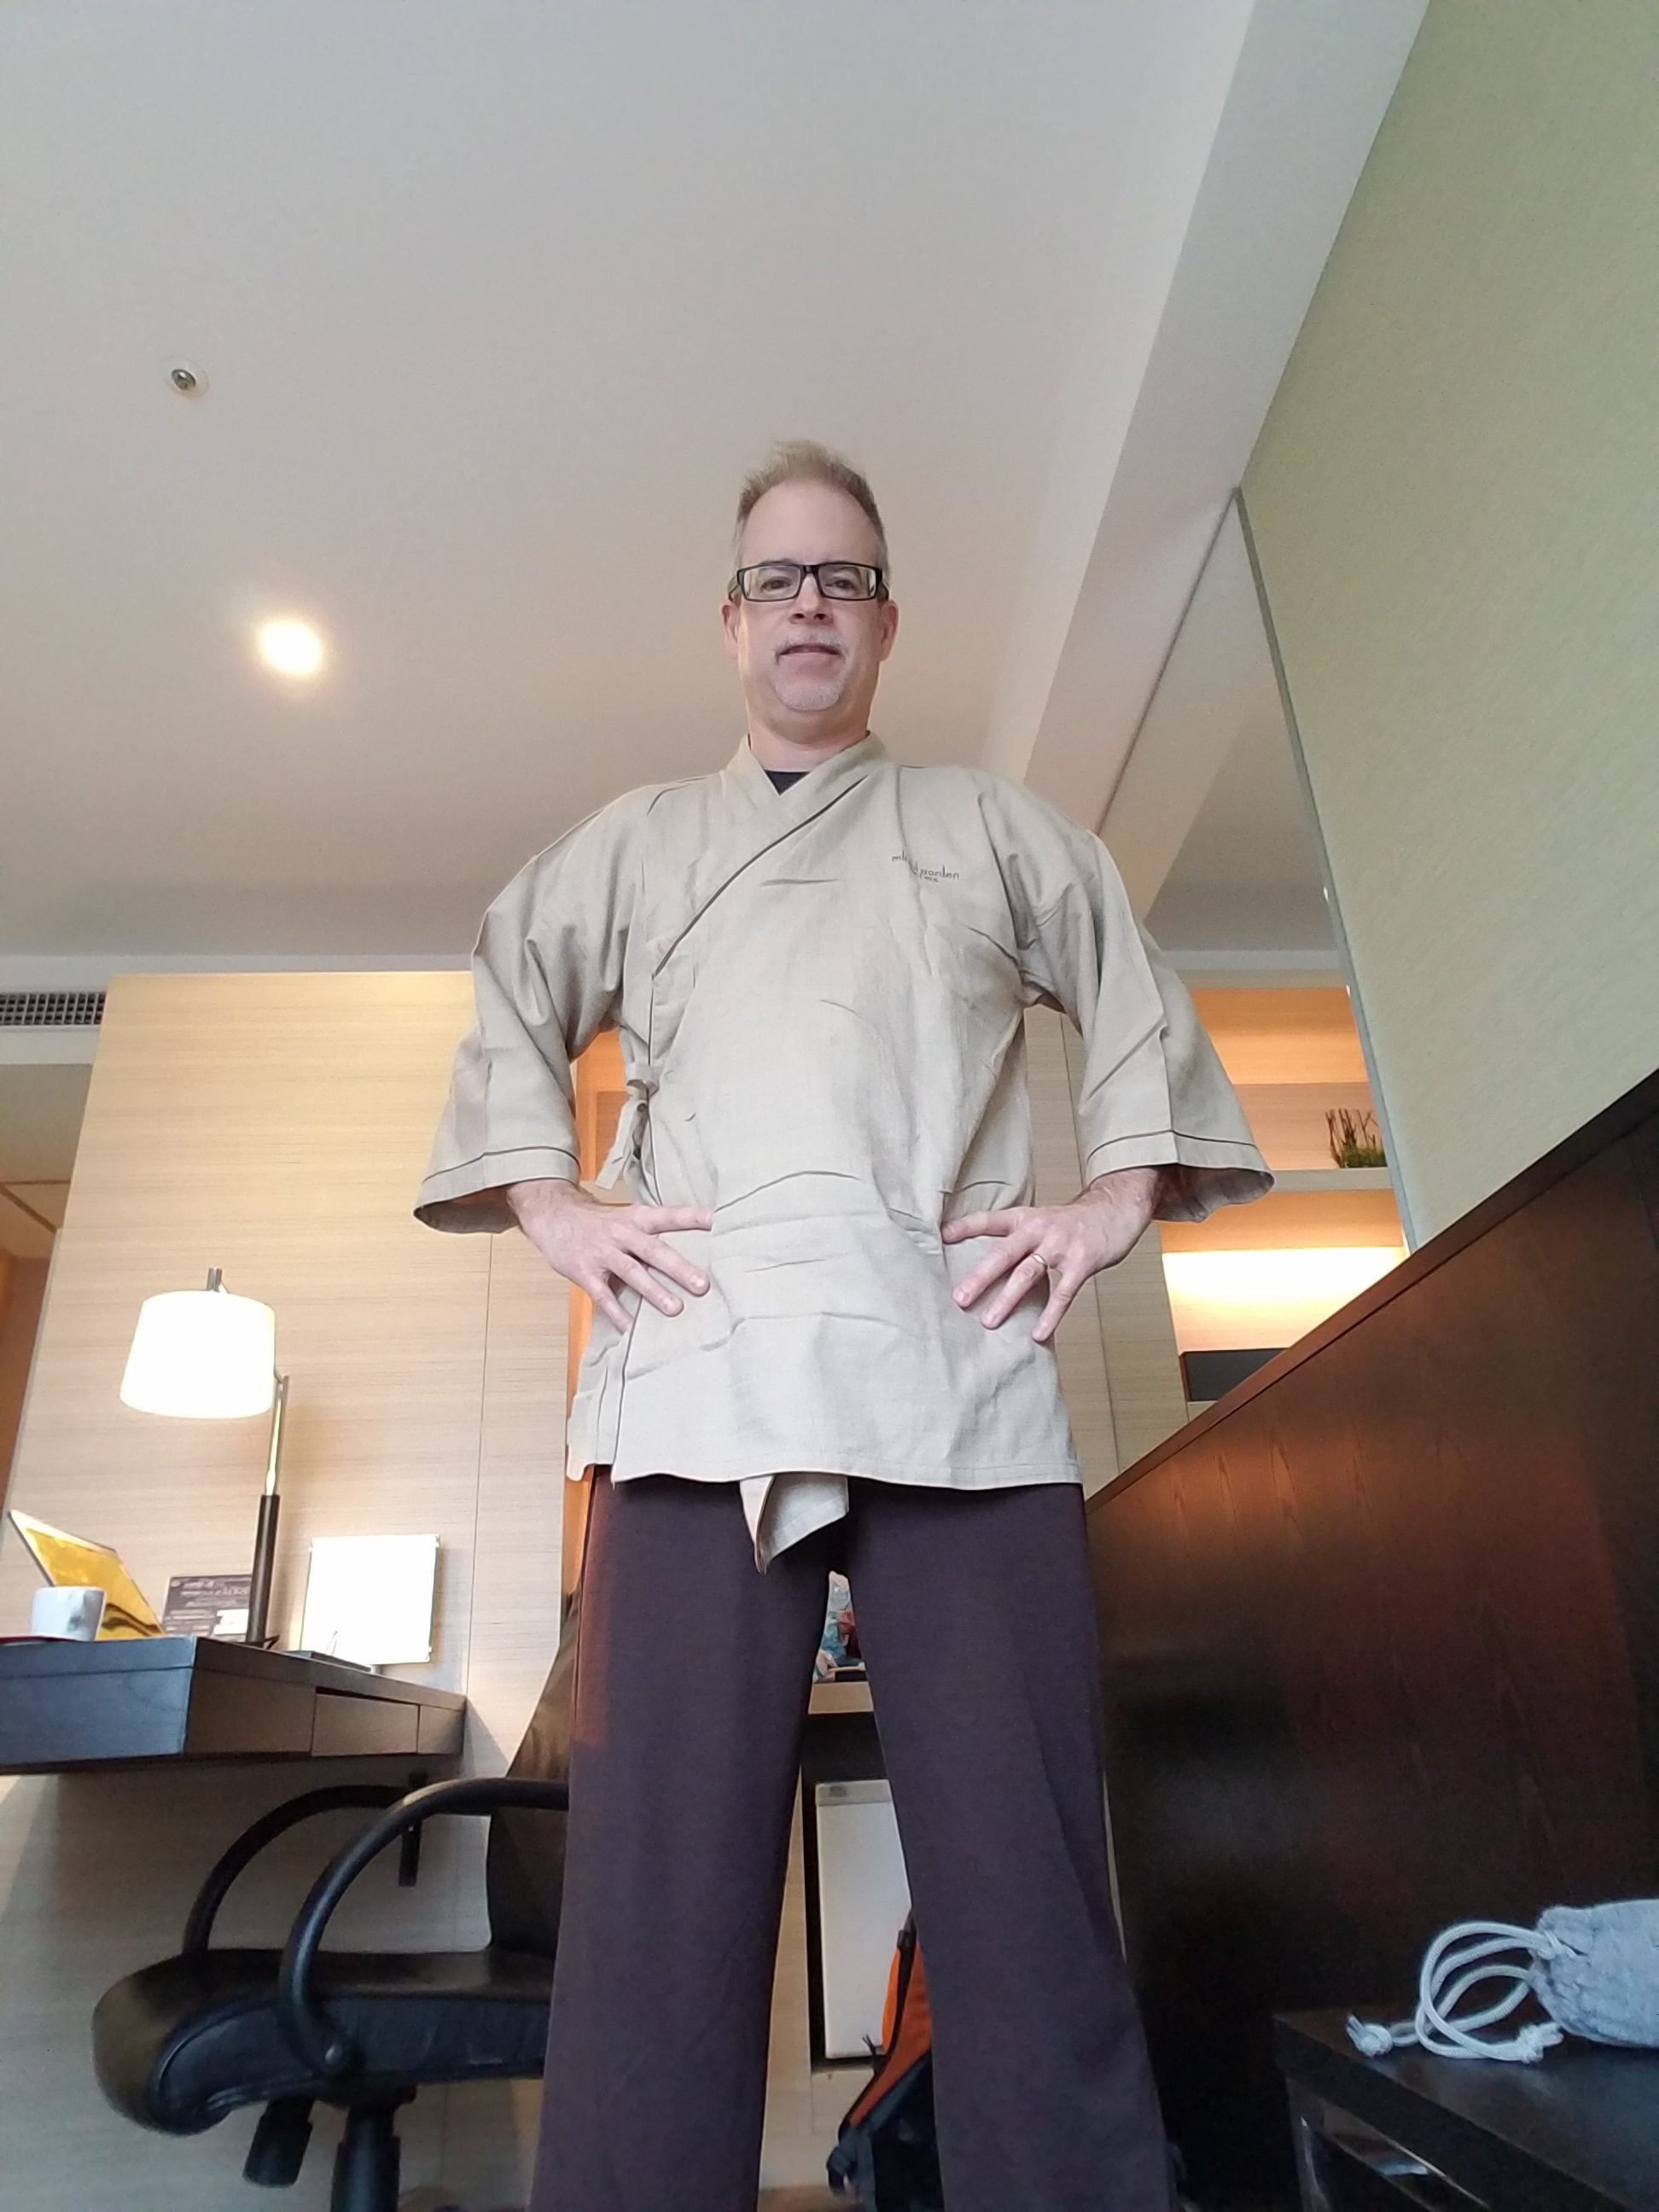 Getting ready for the onsen - nude bathing with Umbach has been the highlight of the trip so far